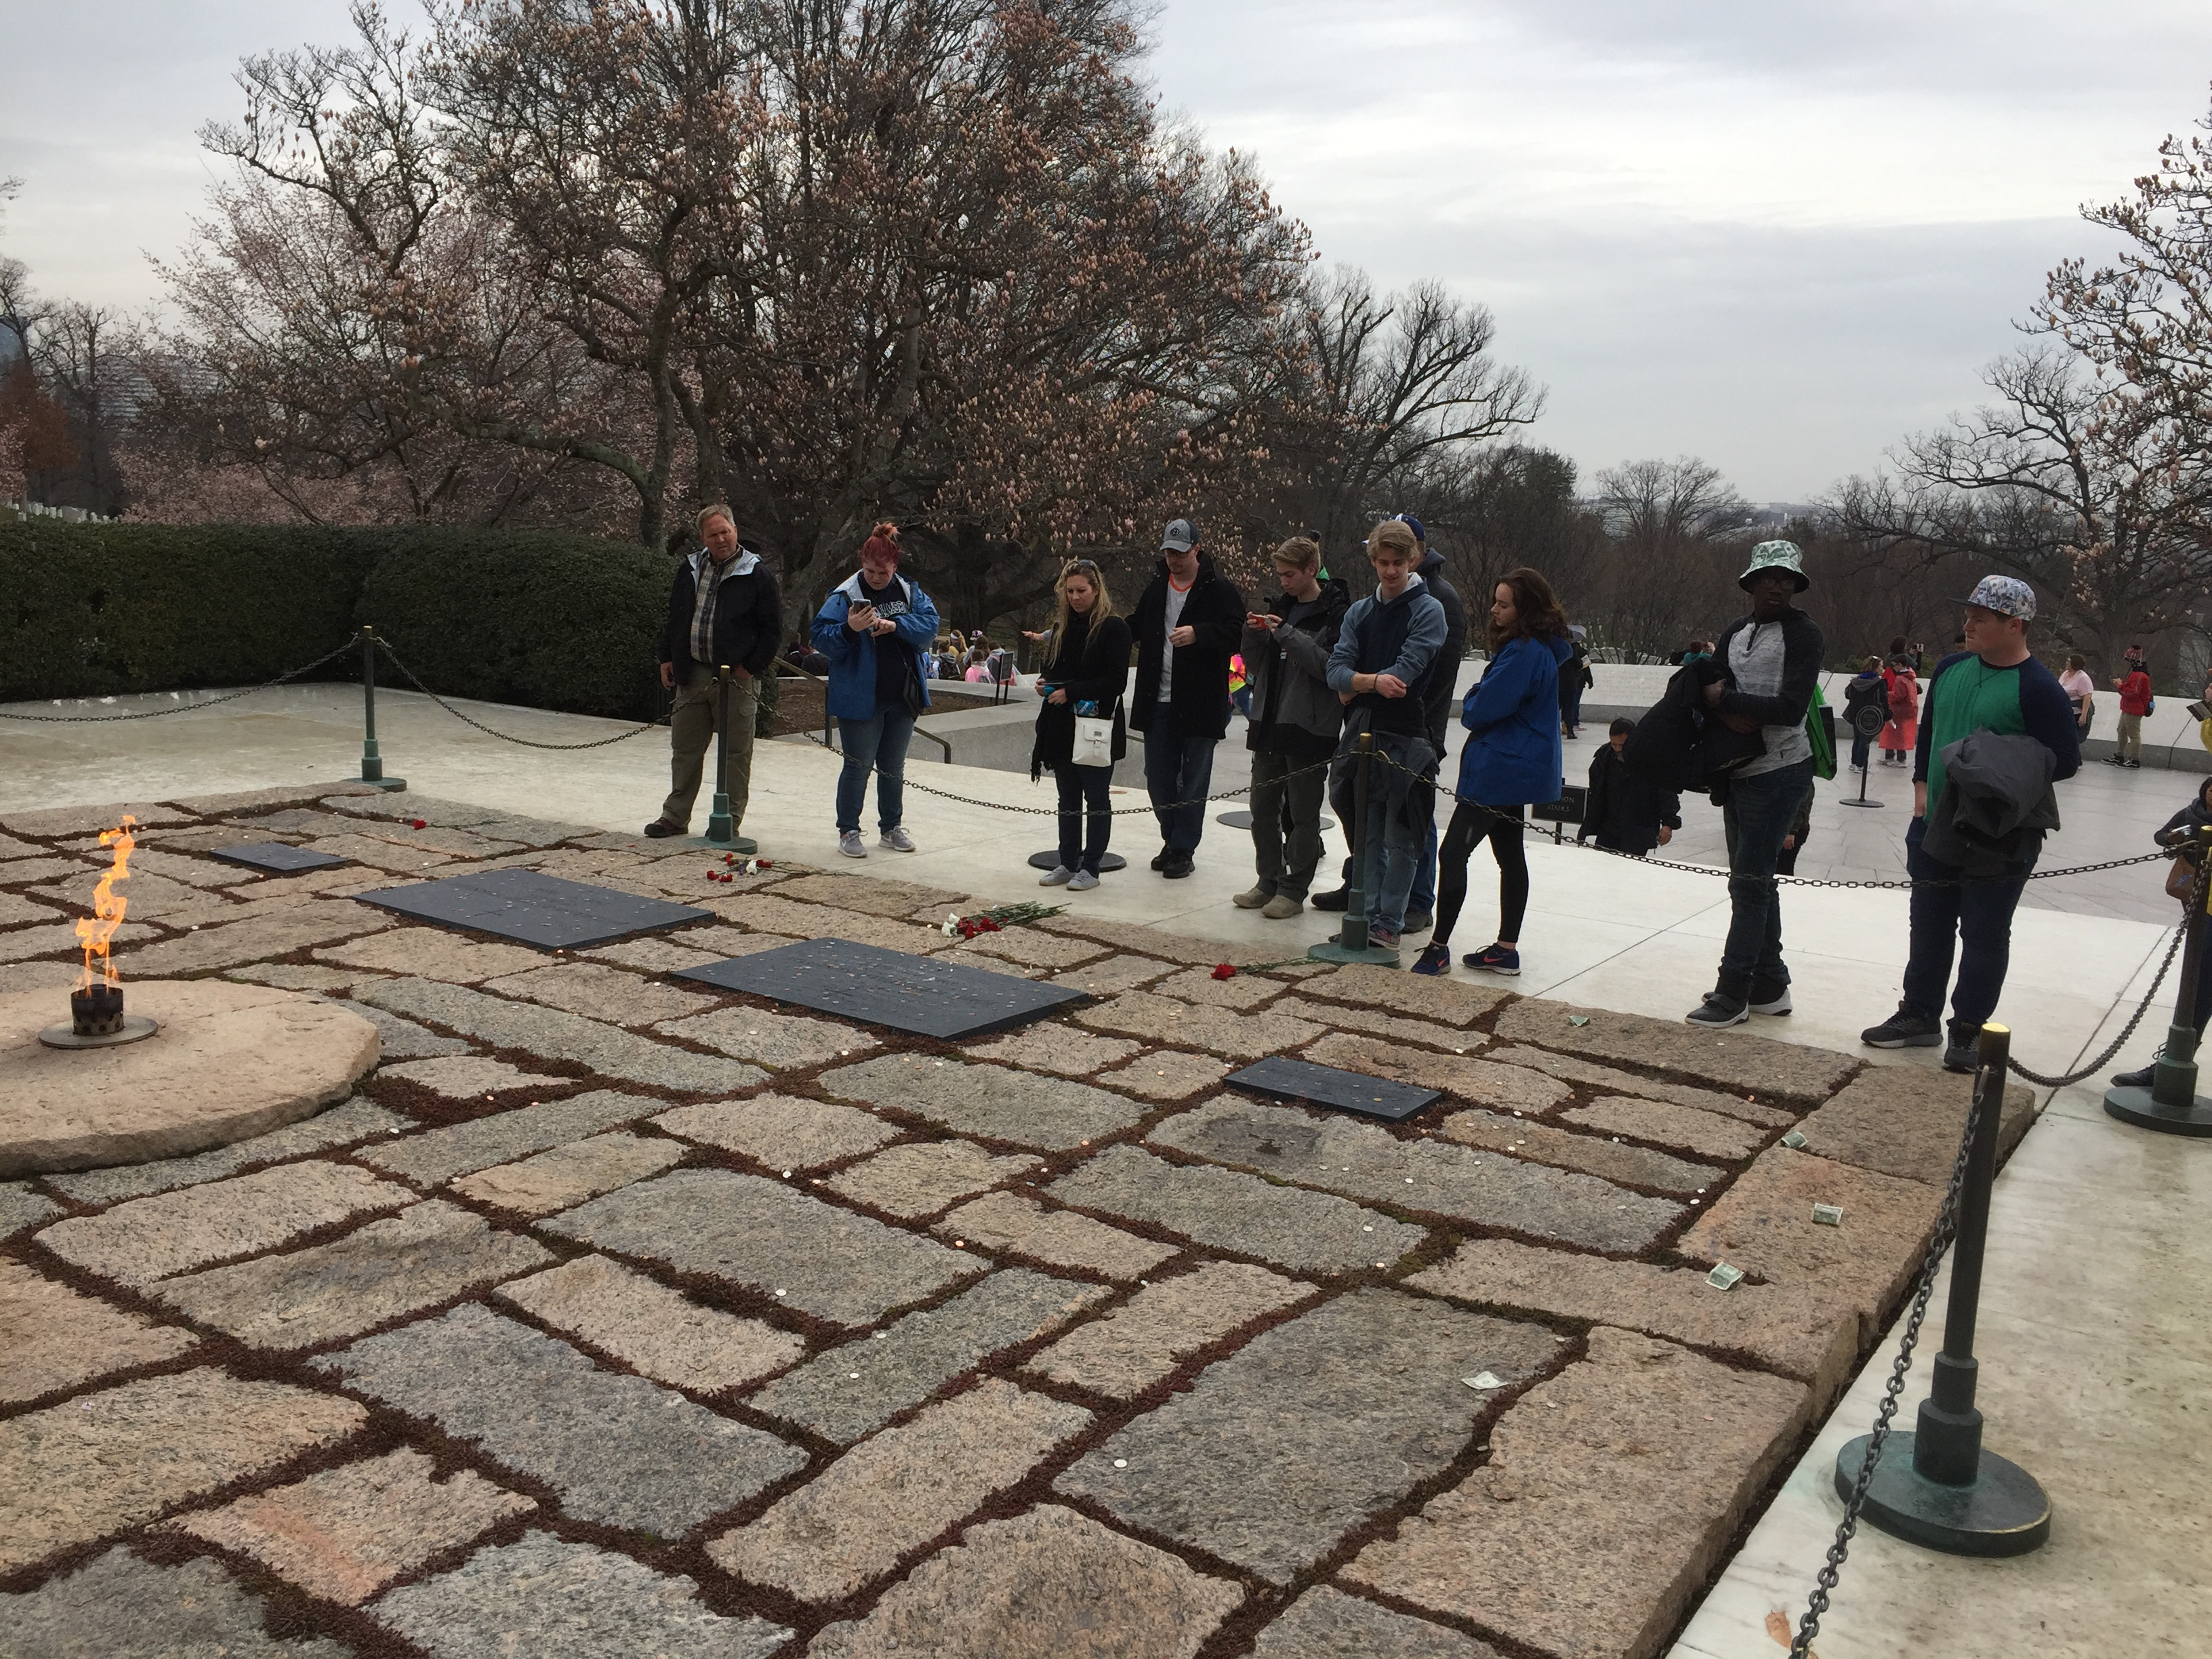 Students at John F. Kennedy gravesite